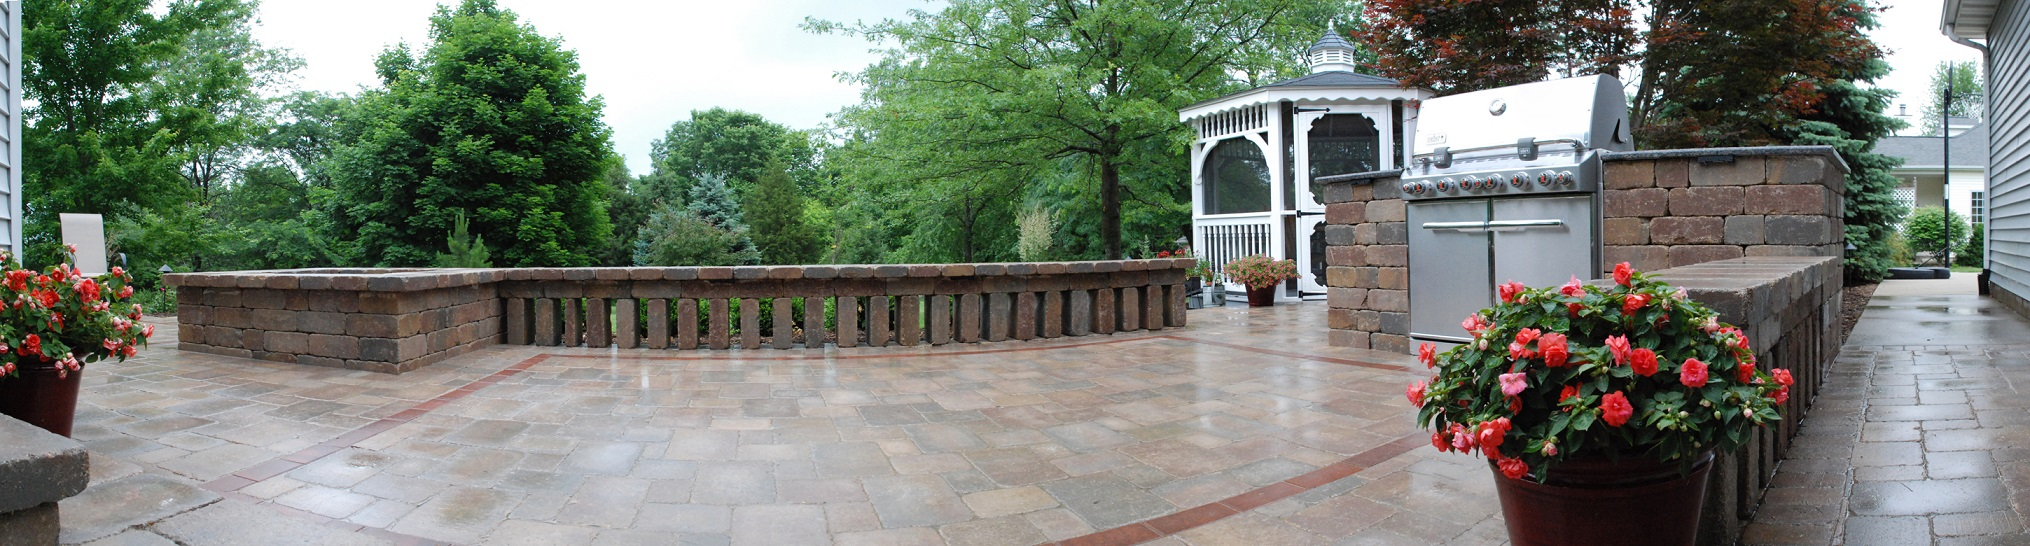 Stunning patio with top quality patio pavers in central Illinois